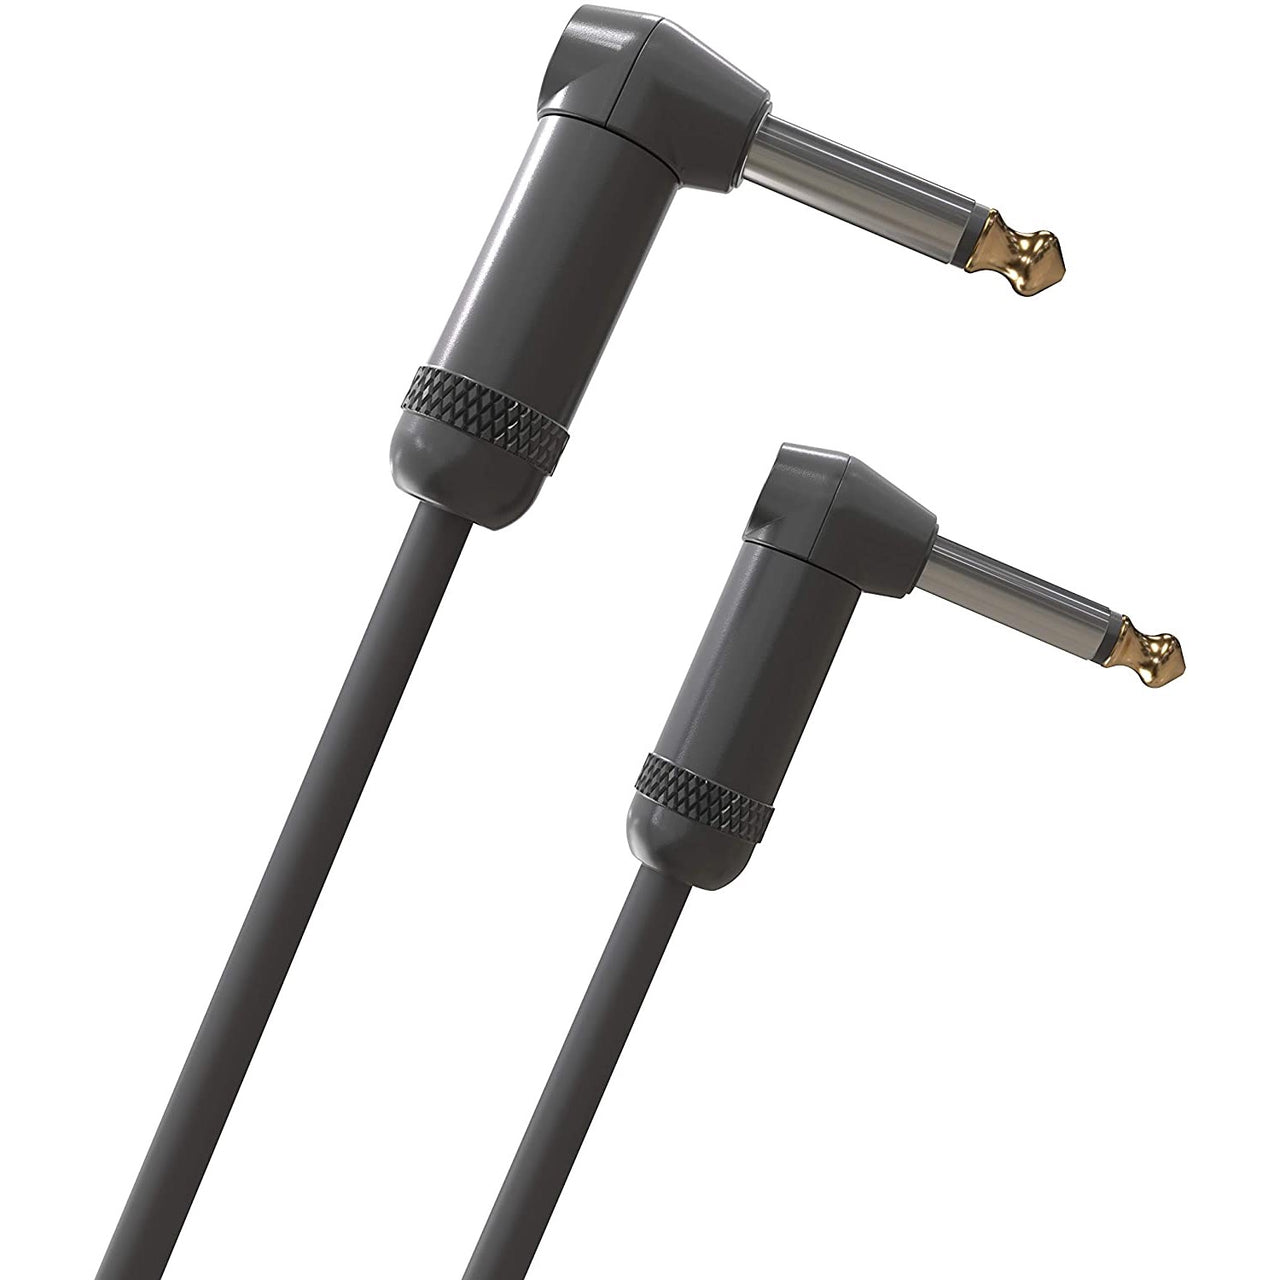 D'Addario American Stage Instrument Cable - 10ft (3meters) - Dual Right Angle